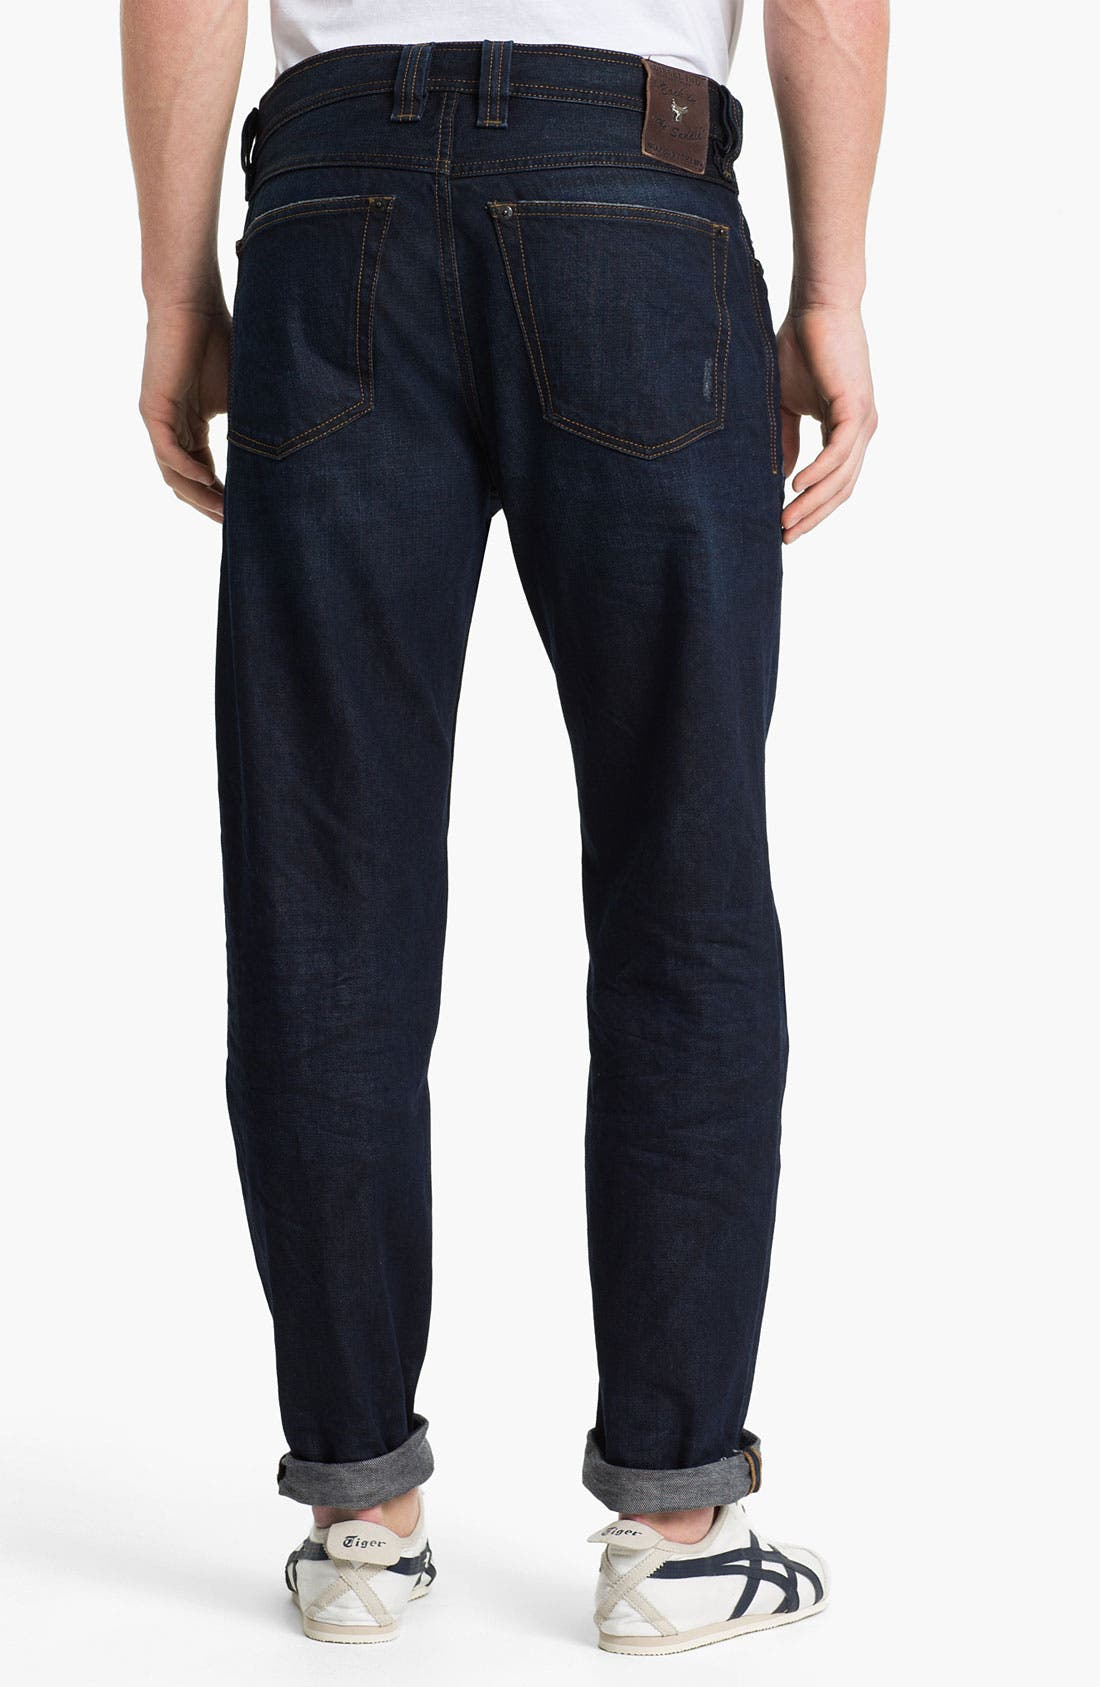 'Back in the Saddle' Relaxed Tapered Leg Jeans,                             Main thumbnail 1, color,                             400